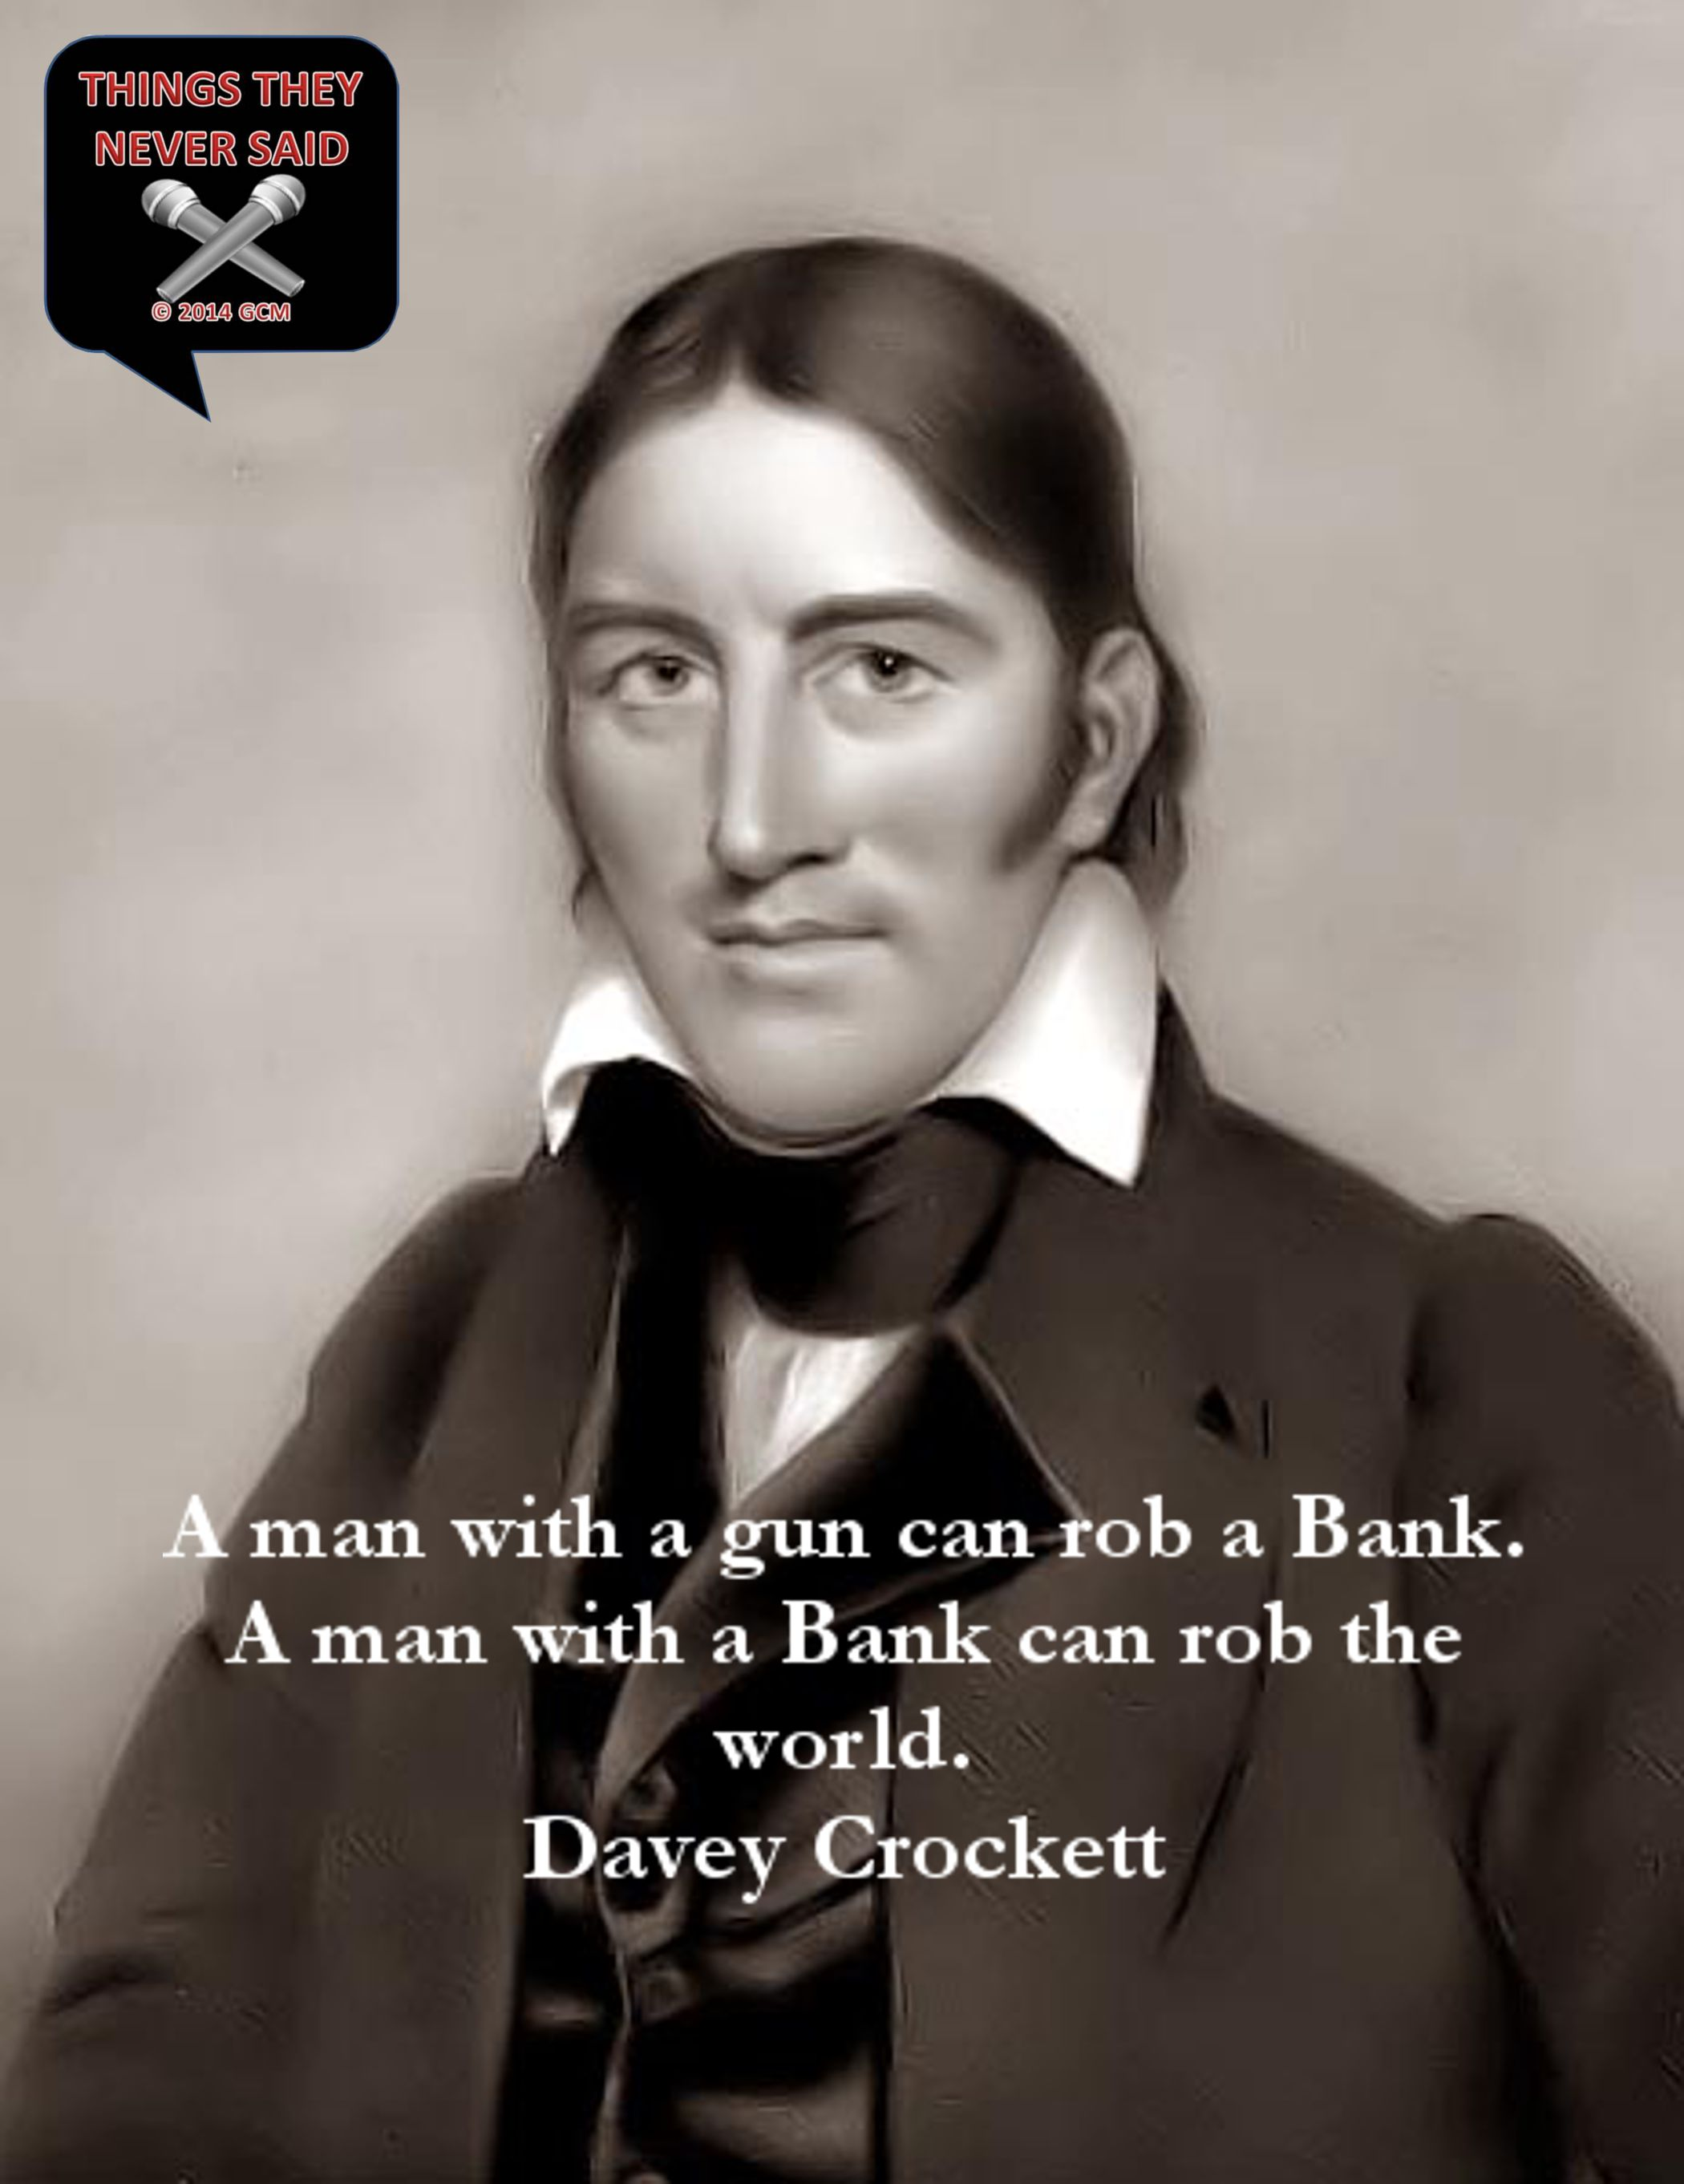 Davy Crockett Quotes : crockett, quotes, Davey, Crockett, Never, This..., Inspirational, Quotes,, Sayings,, Words